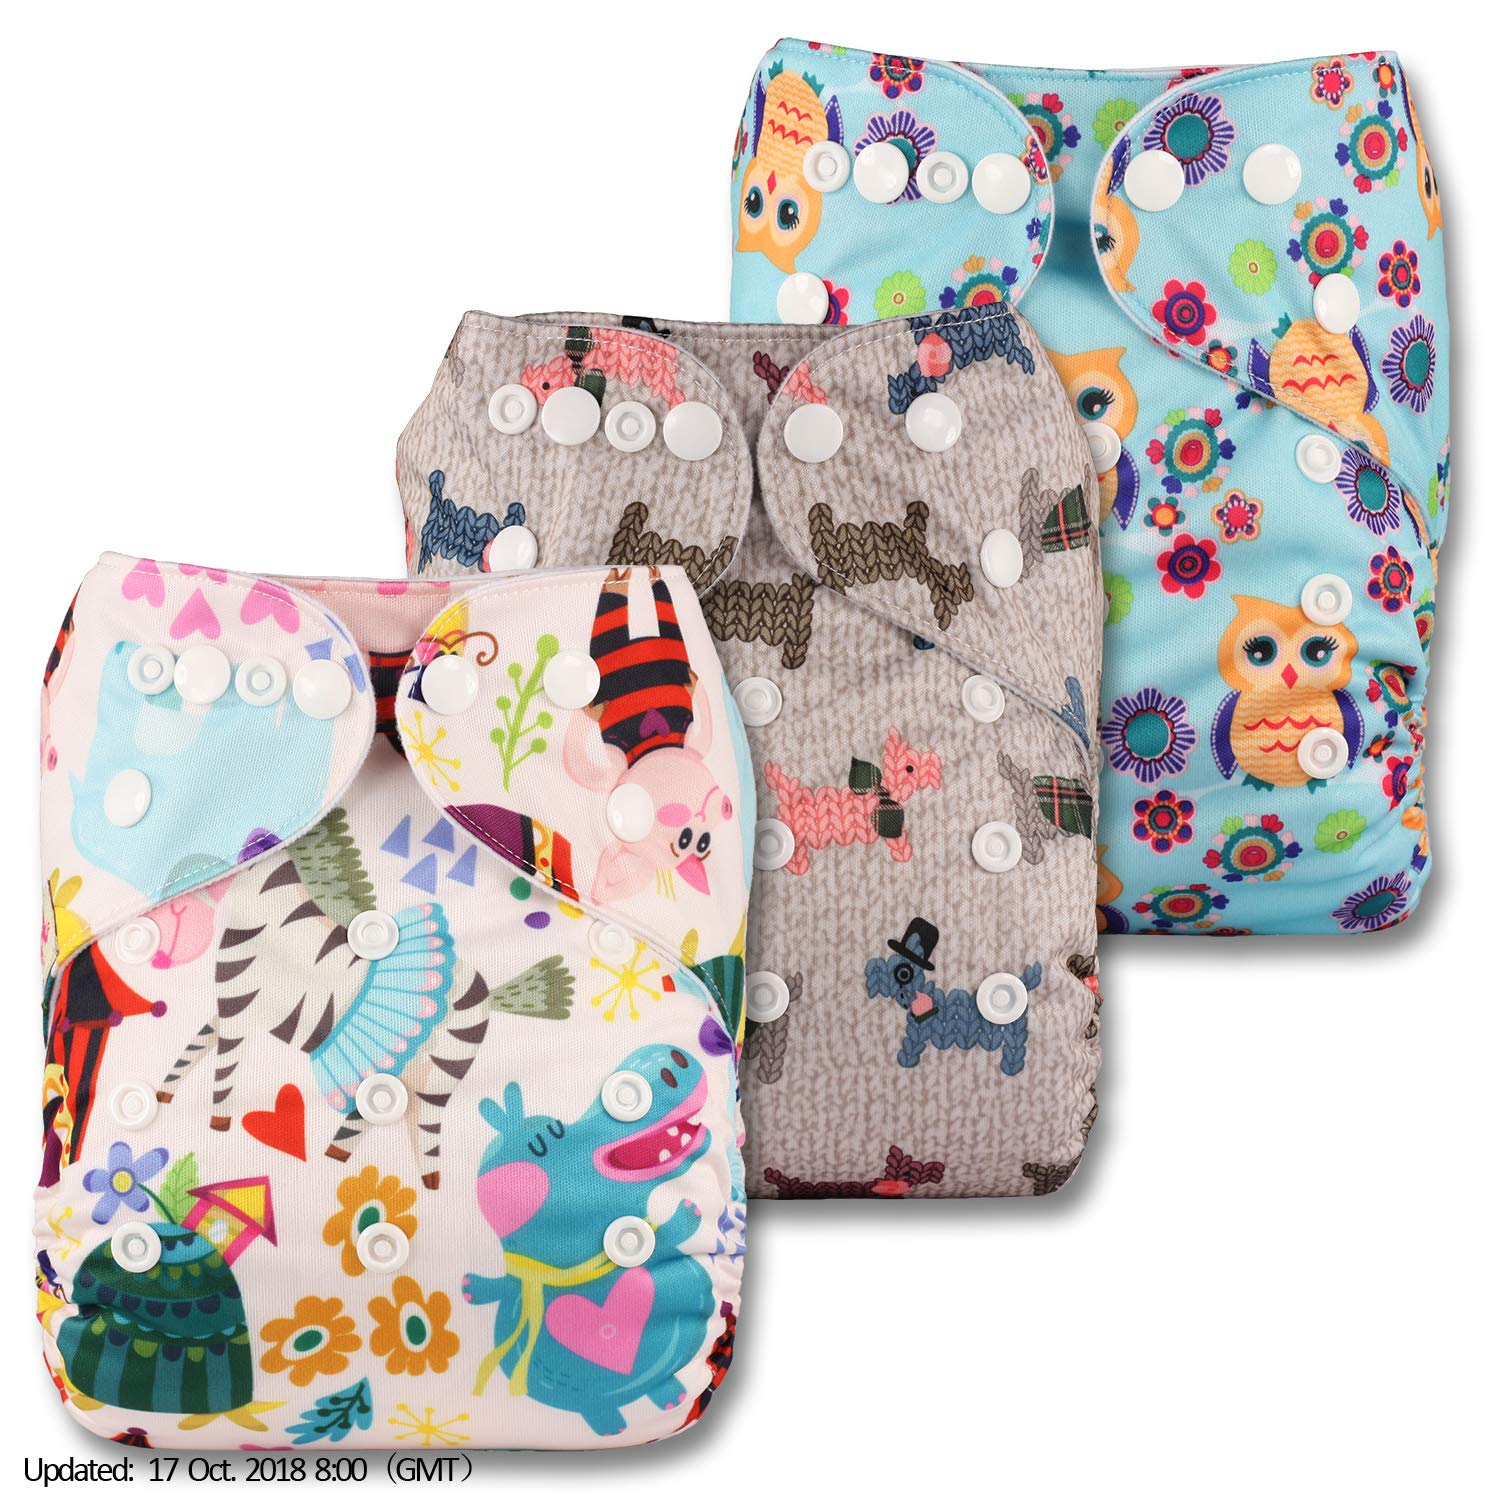 Fastener: Popper Littles /& Bloomz Patterns 329 with 6 Bamboo Inserts Reusable Pocket Cloth Nappy Set of 3